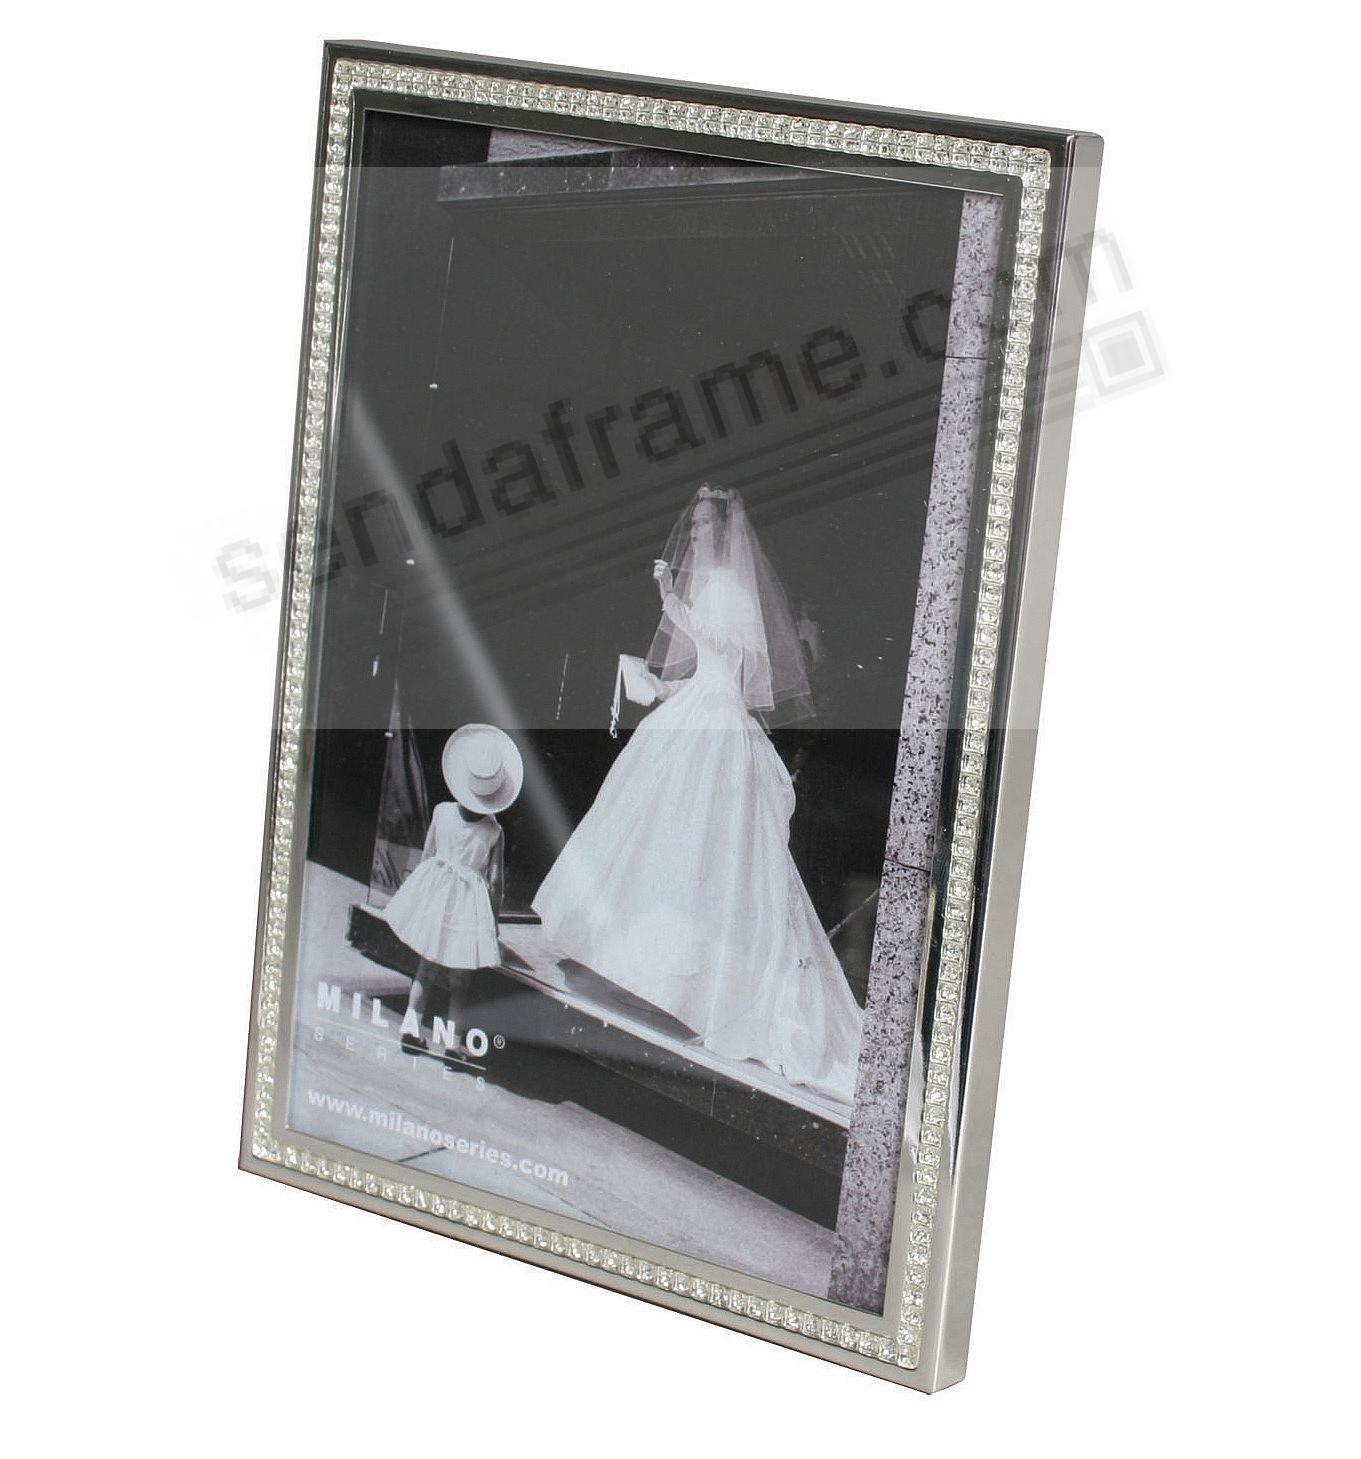 SPARKLE Crystal + Silver frame by Milano Series® - Picture Frames ...